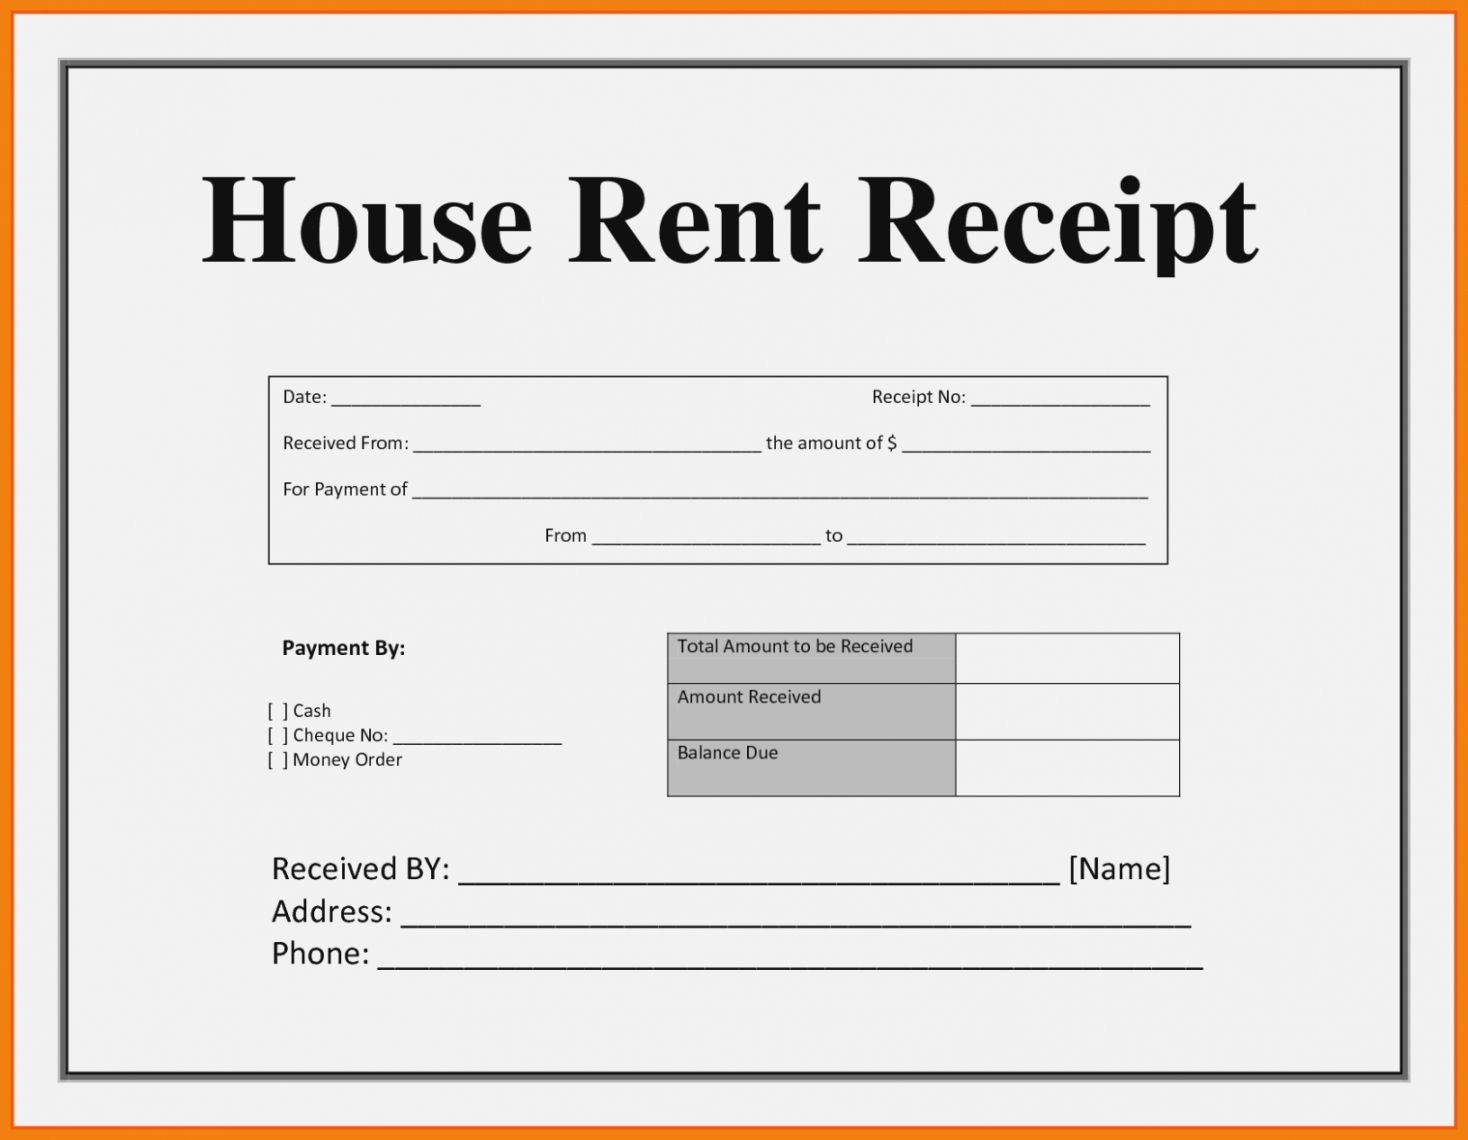 Explore Our Printable House Rent Receipt Template Receipt Template Receipt Templates